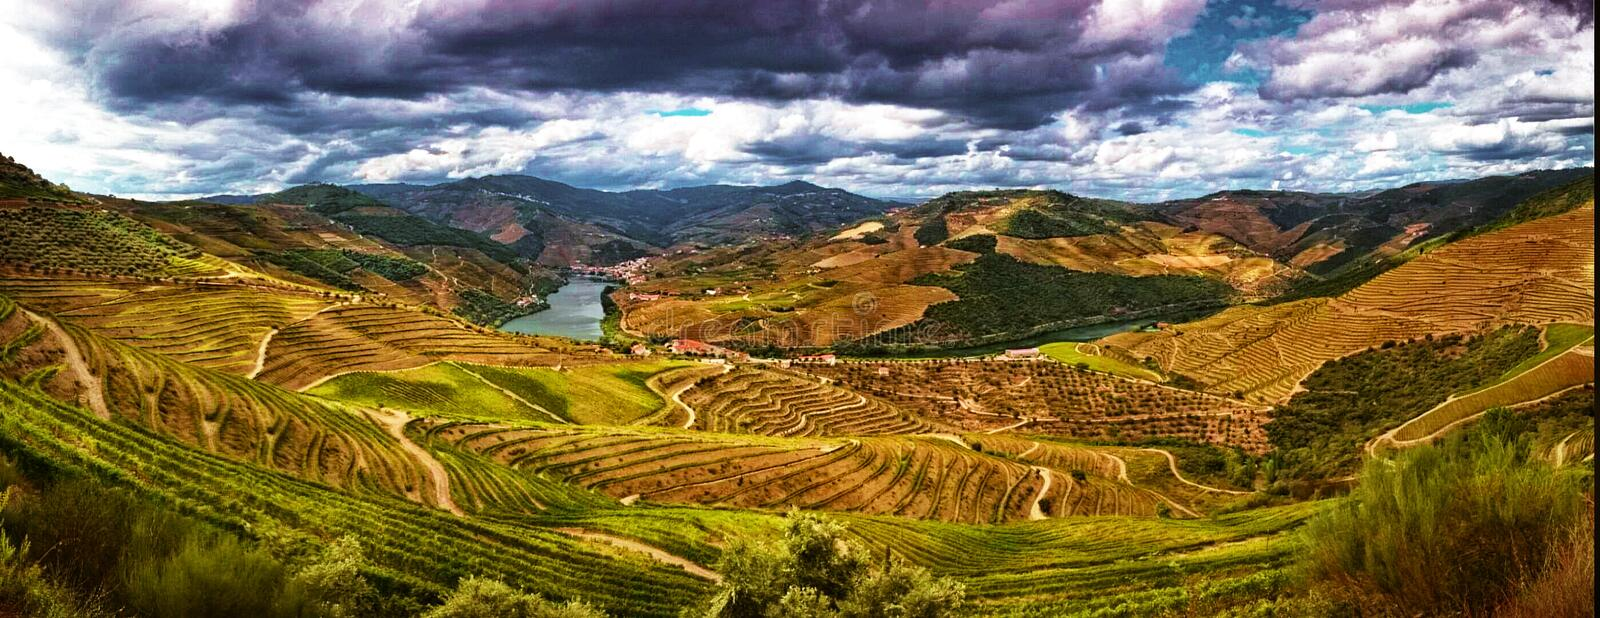 Splendid Douro valley stock photo